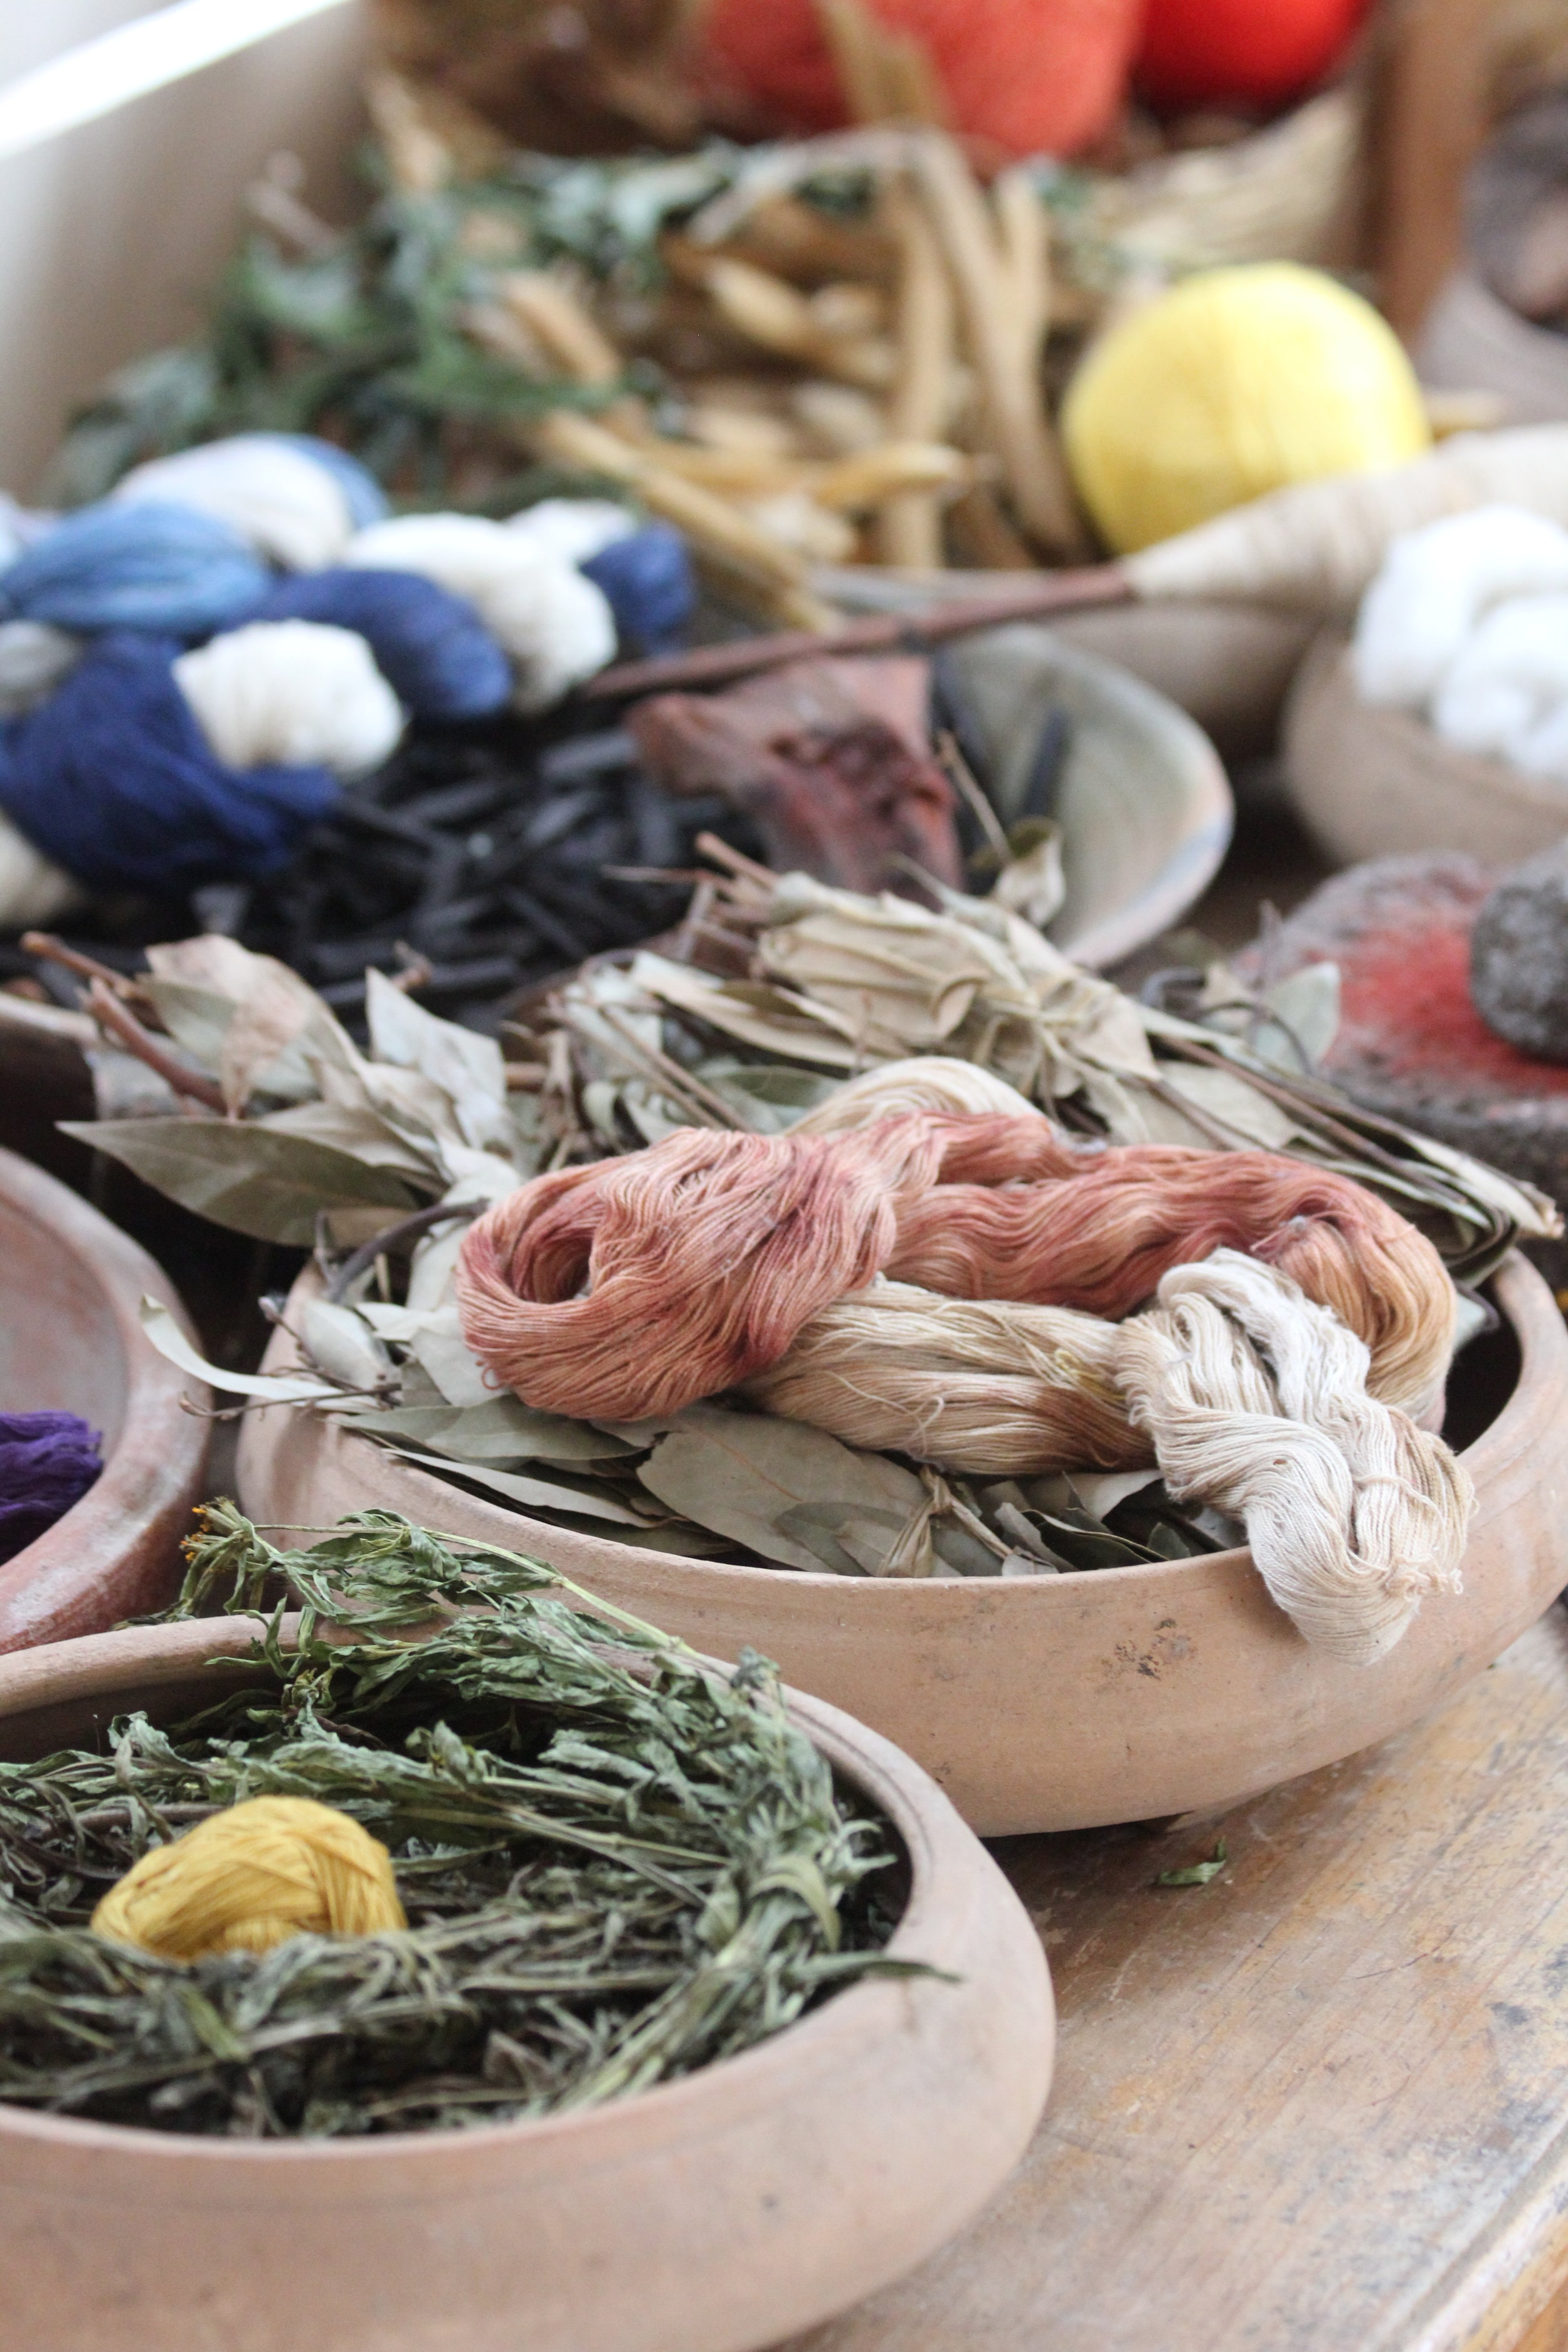 Natural dye sources used by Living Threads Co. artisans in Guatemala